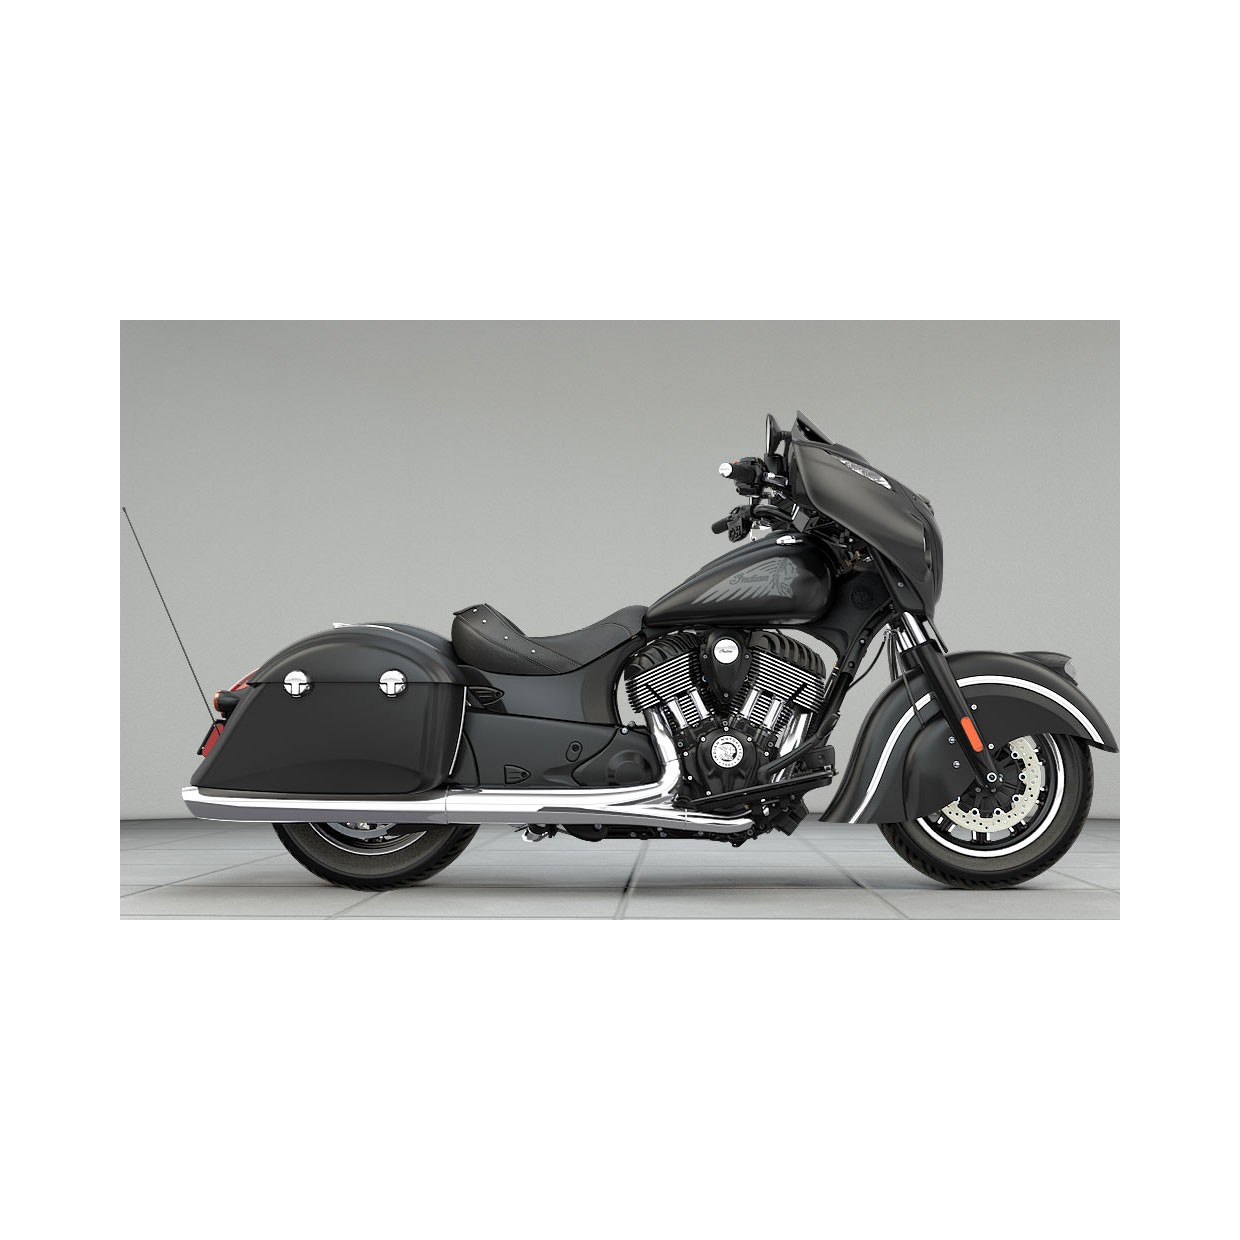 INDIAN Chieftain Nite Darkhorse Black Smoke